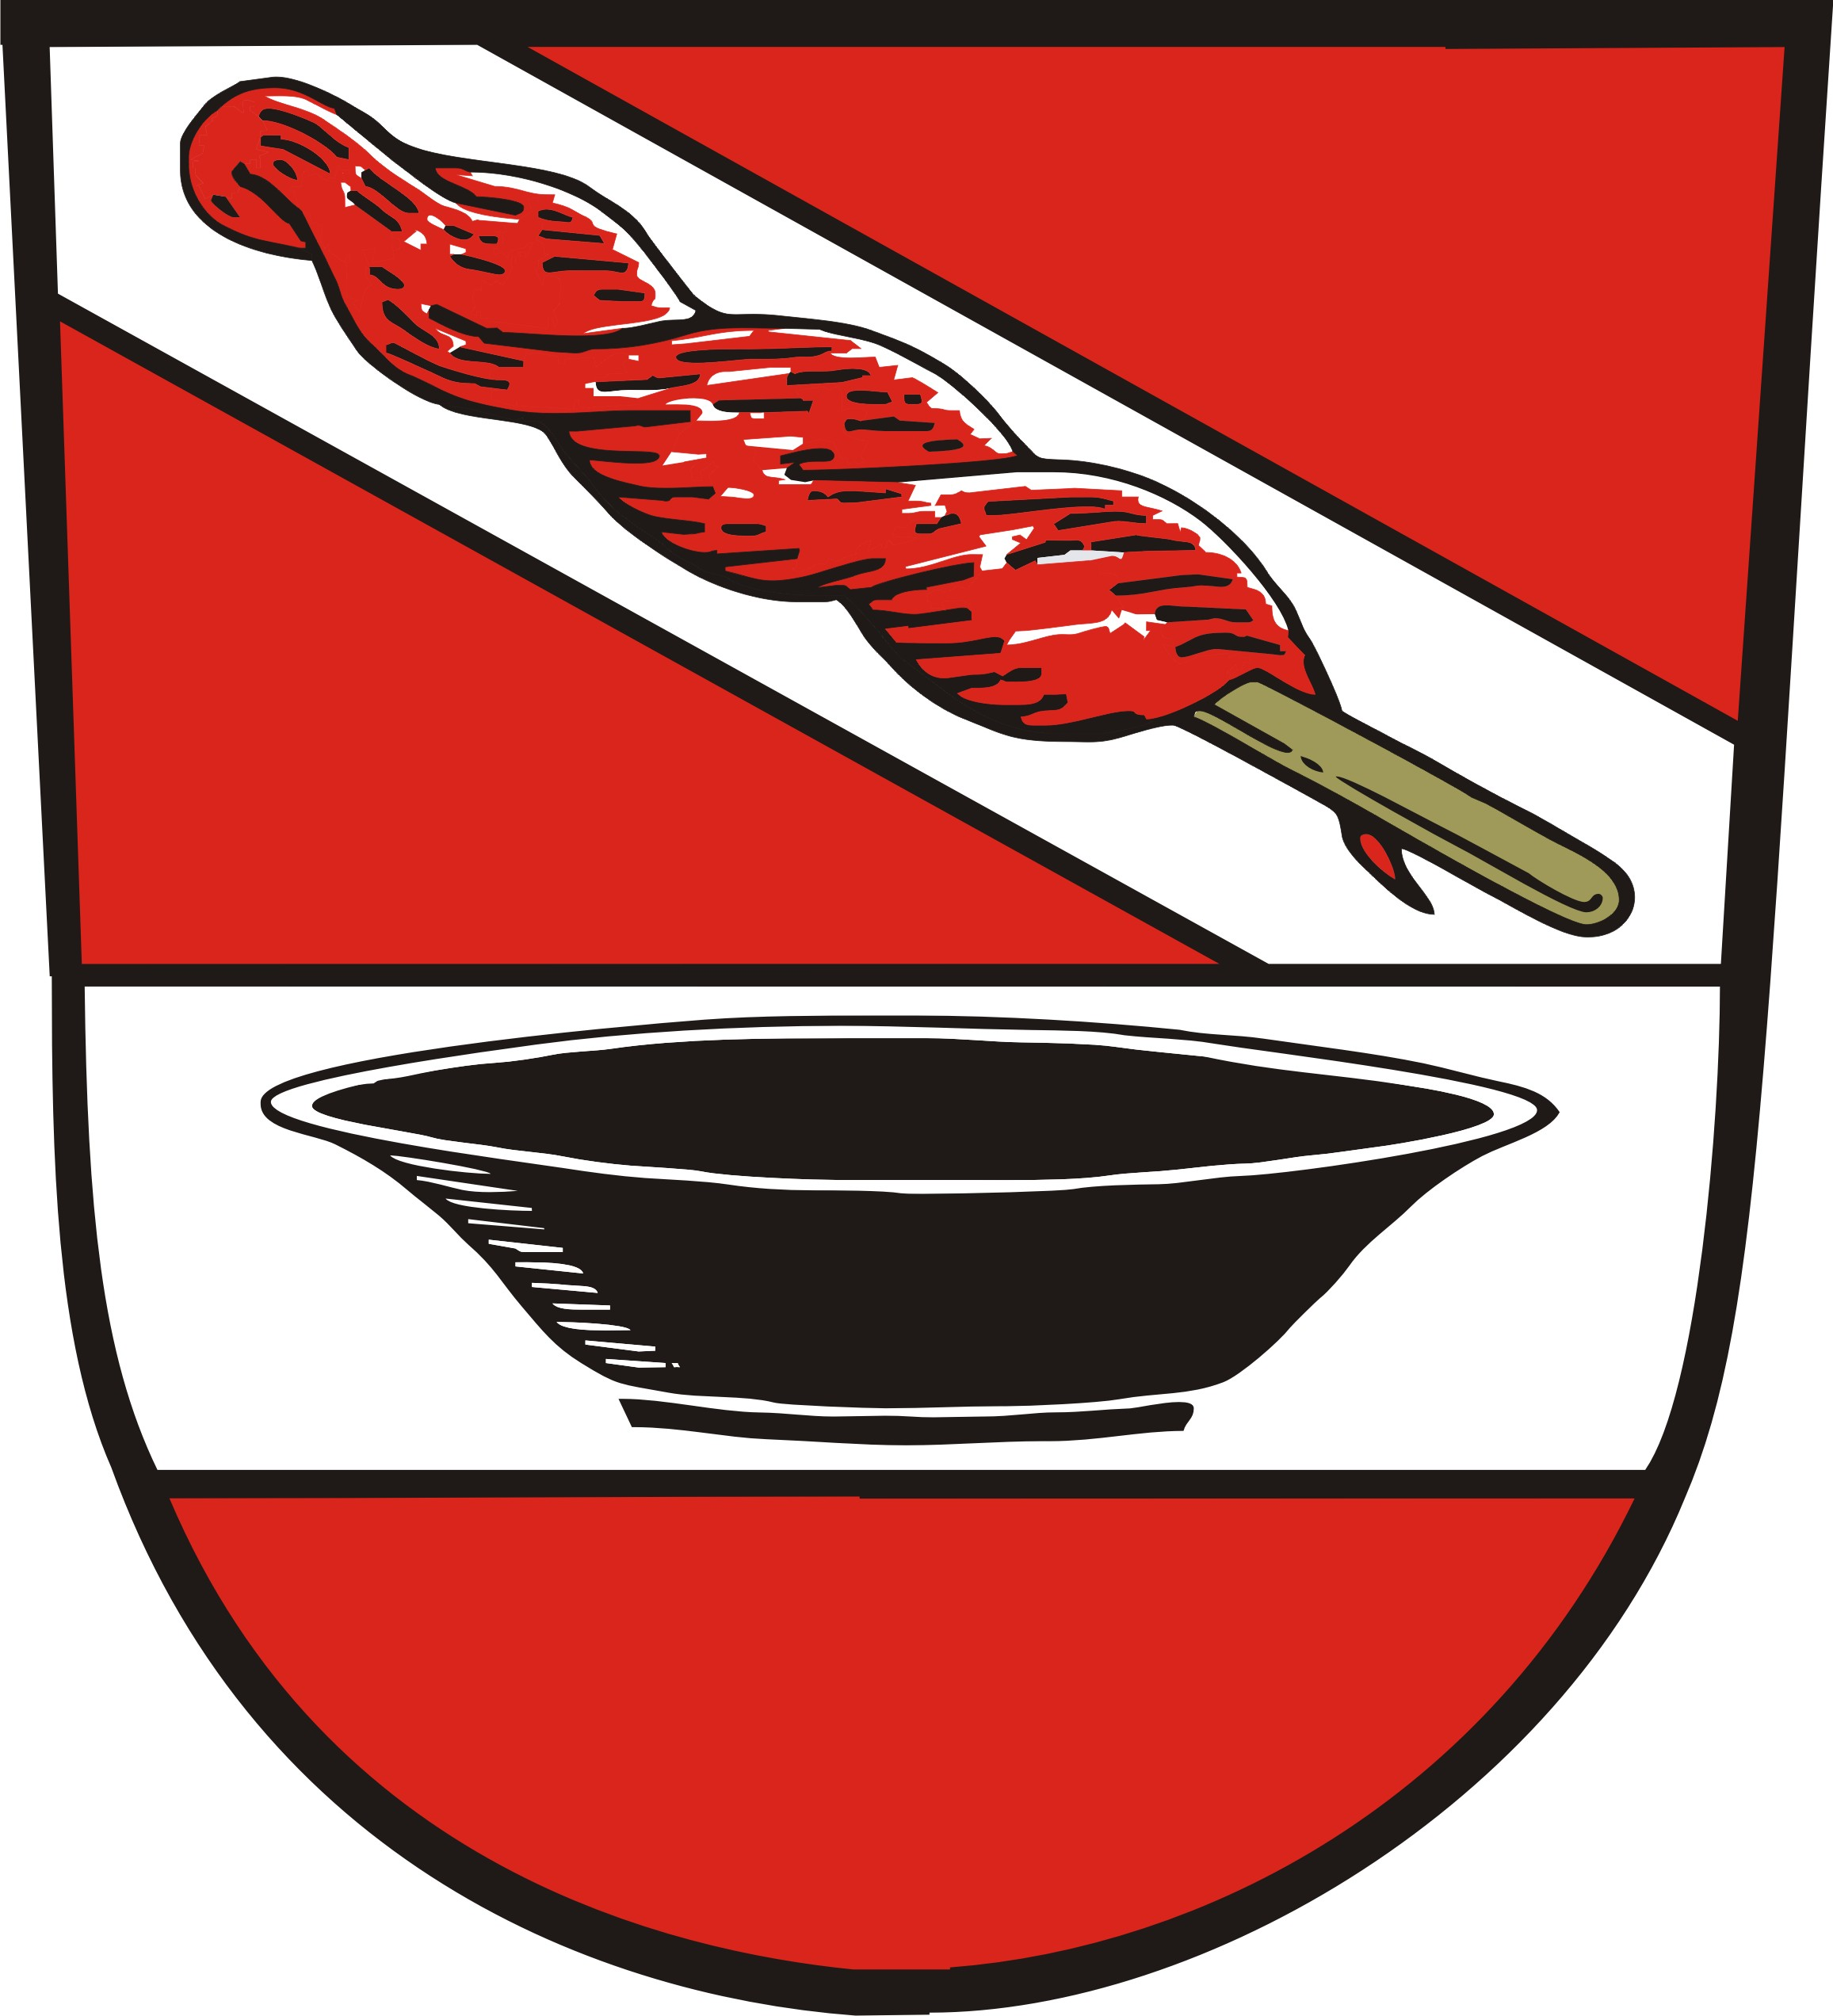 Wappen digital